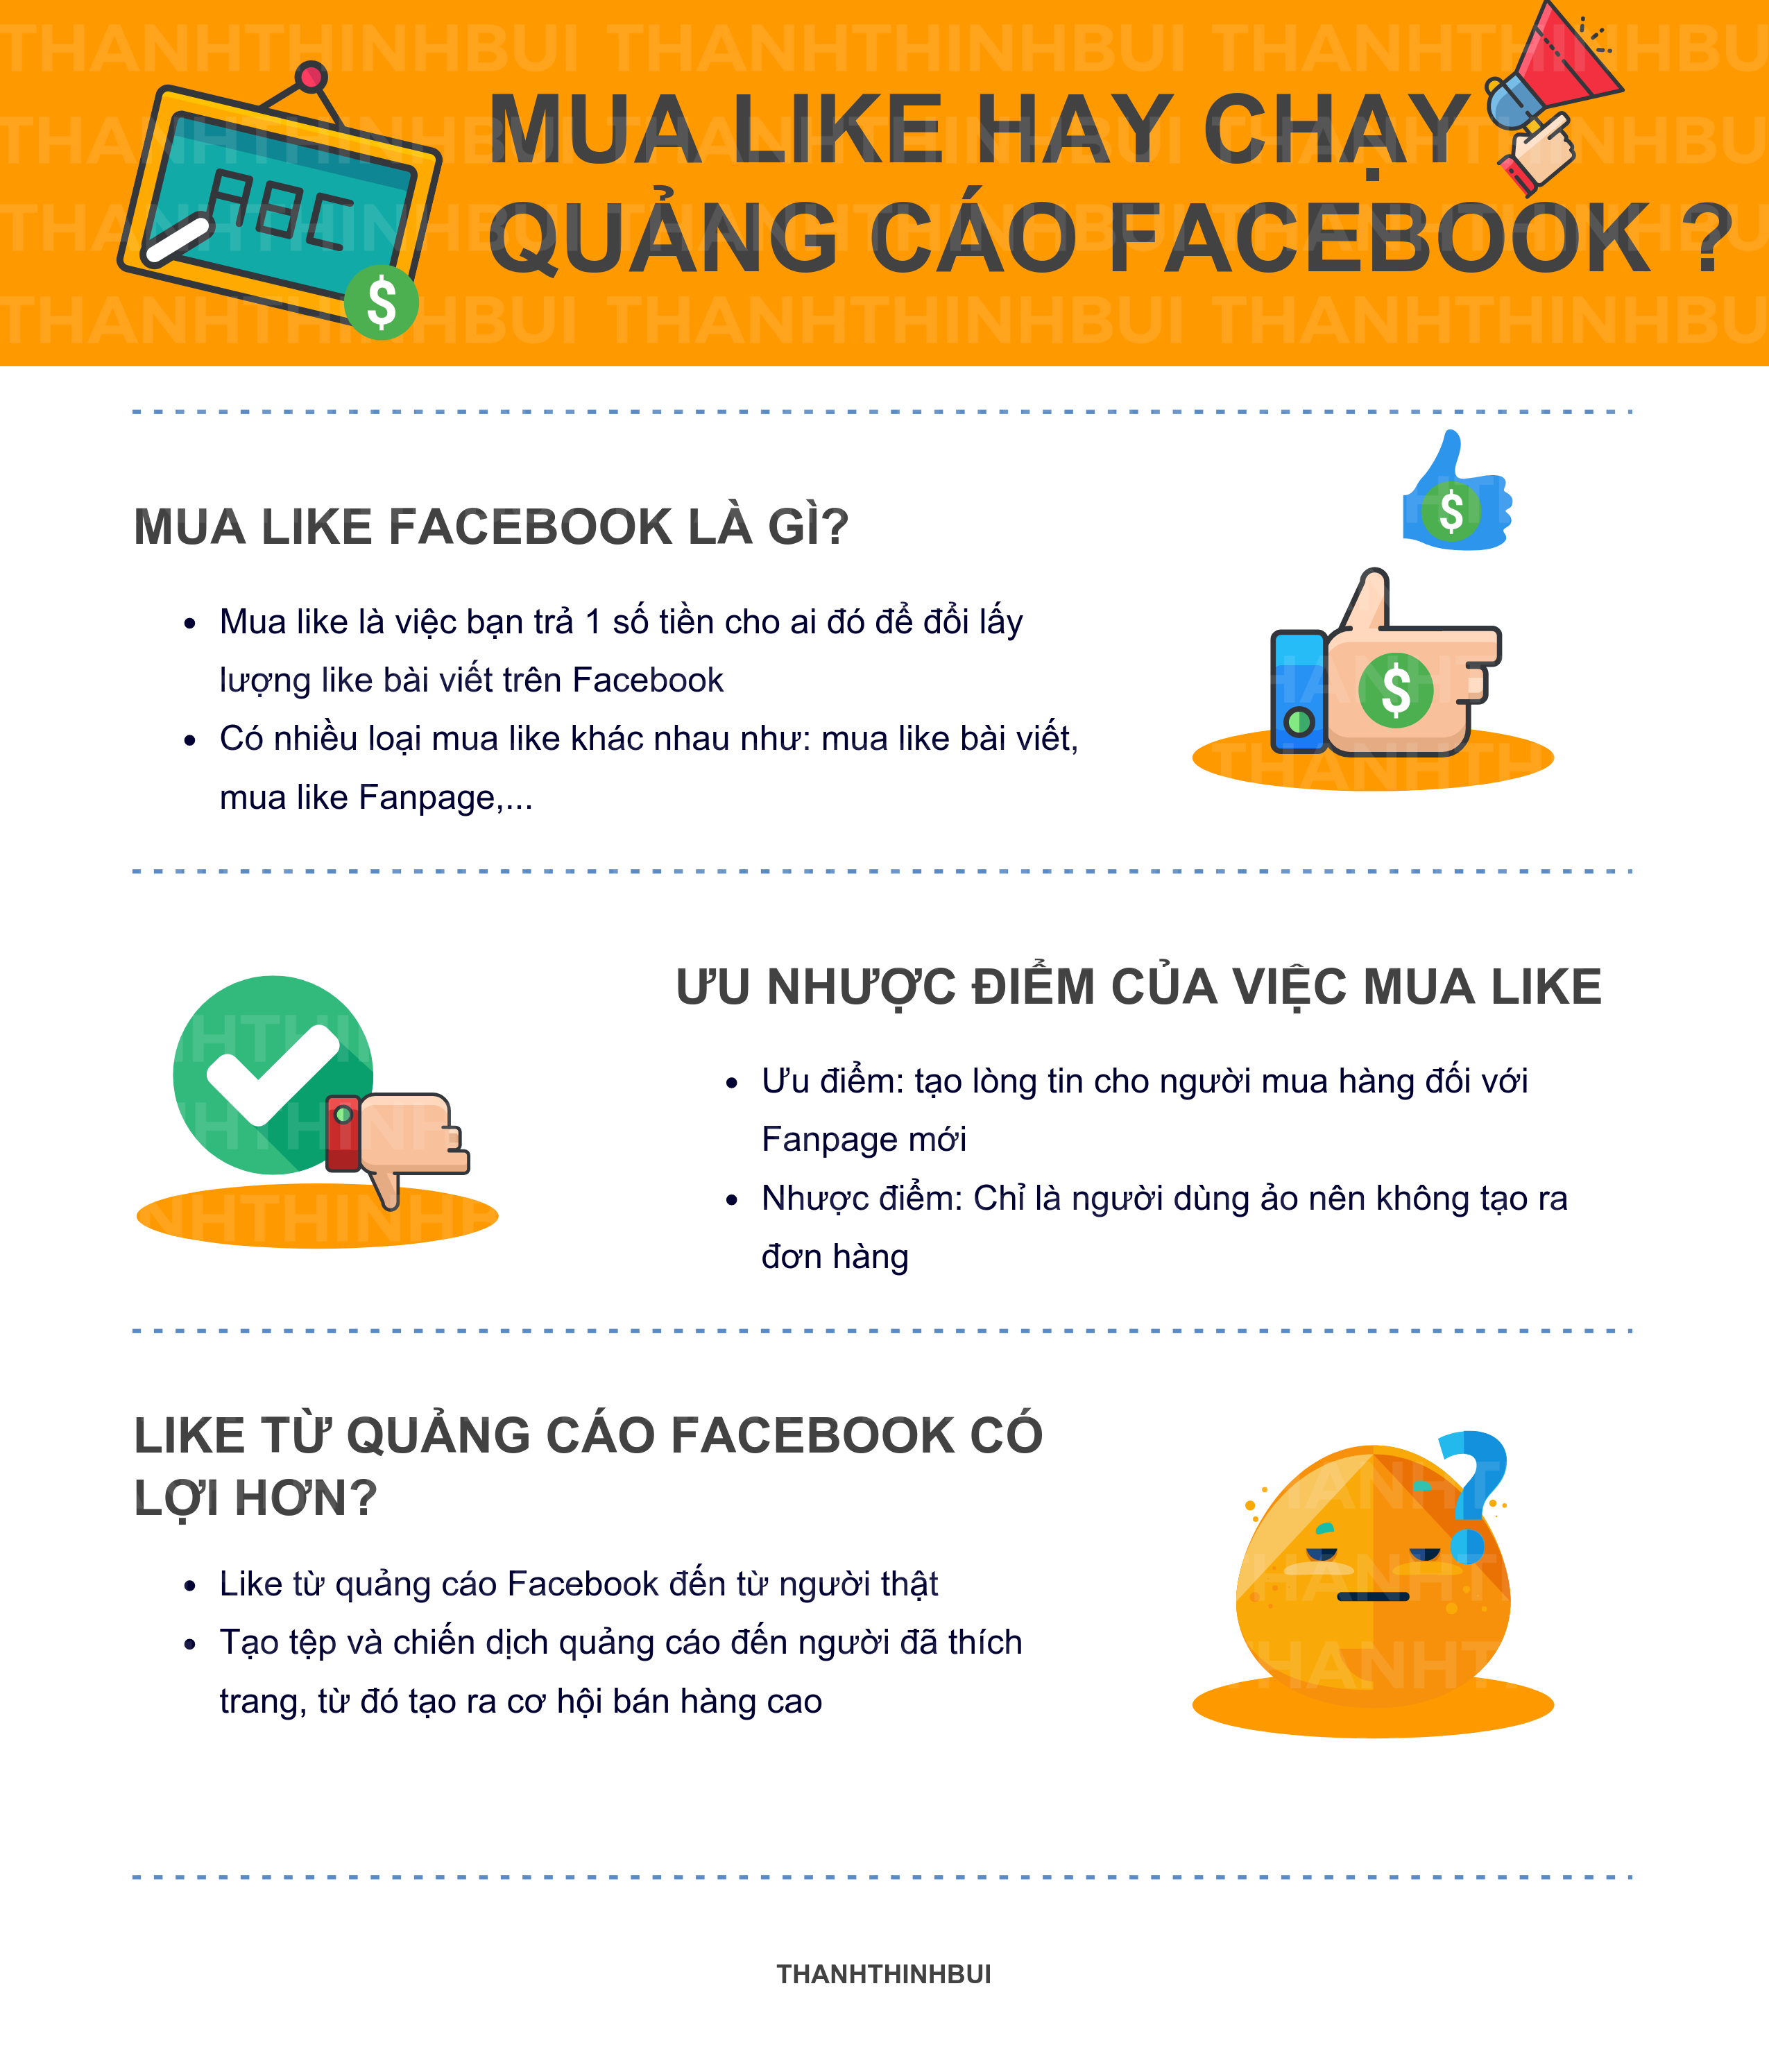 MUA-LIKE-HAY-CHAY-QUANG-CAO-FACEBOOK